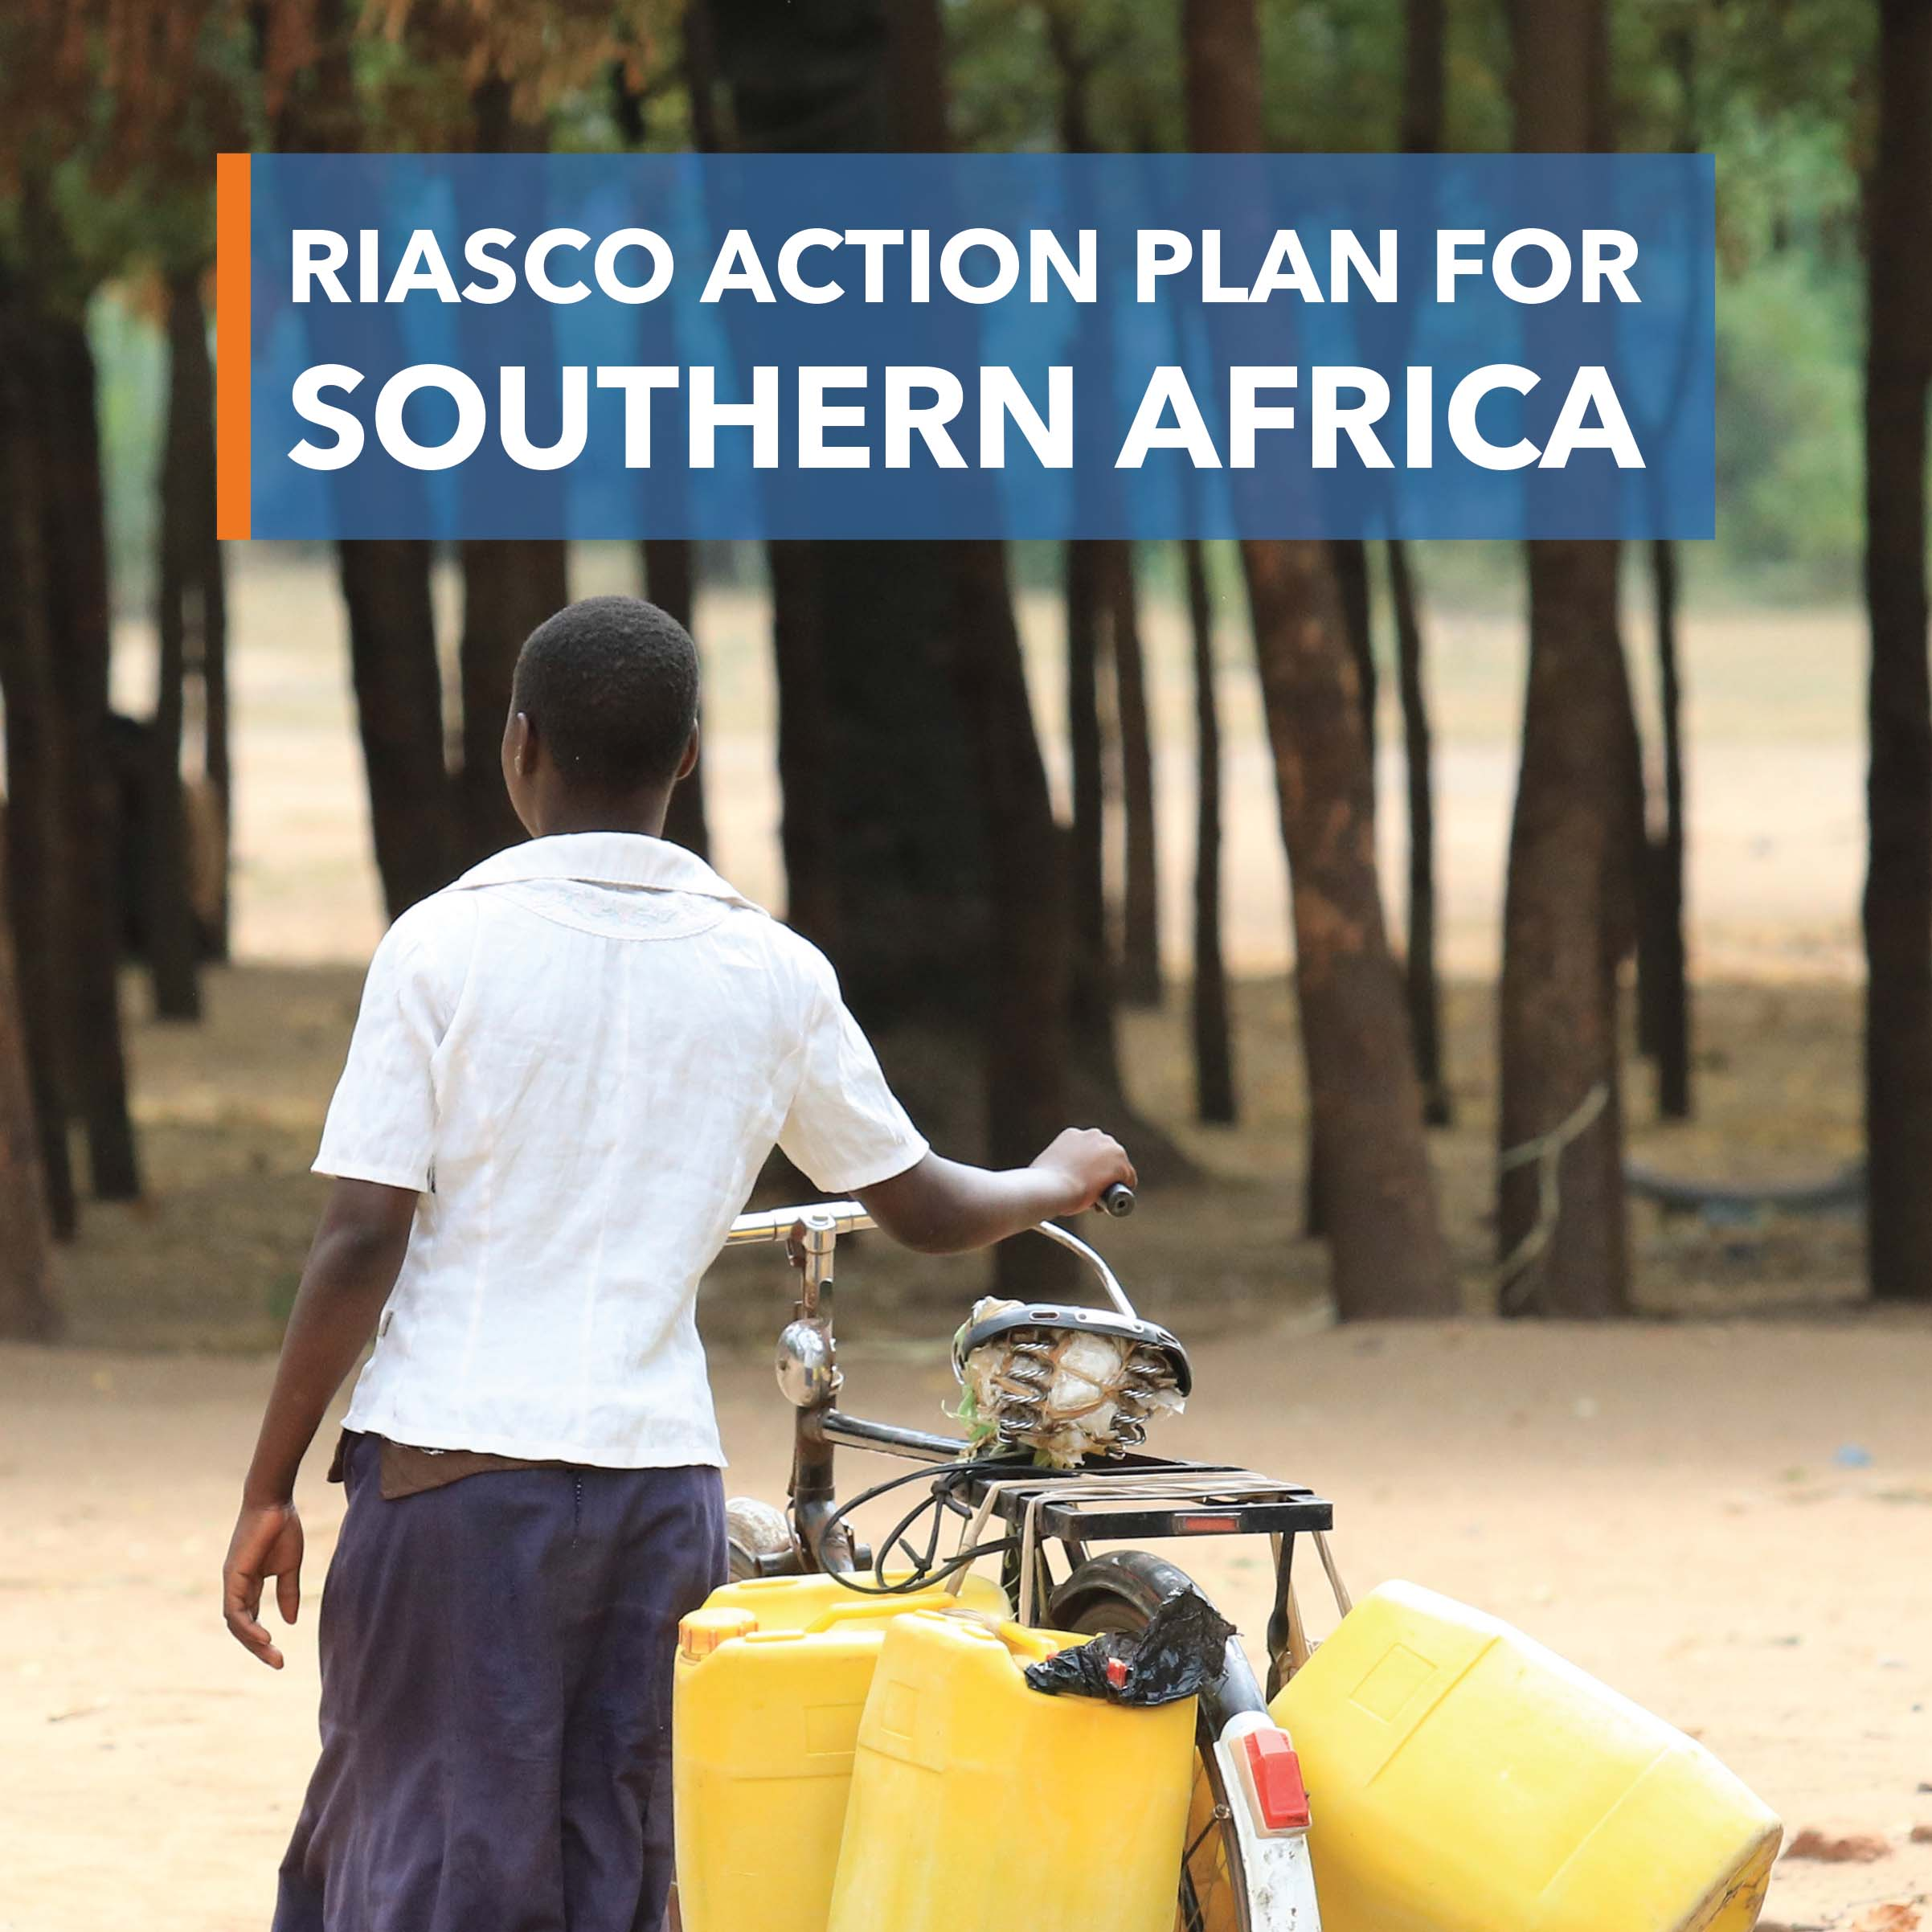 http://www.climhealthafrica.org/wp-content/uploads/2017/09/RIASCO-Action-Plan-366x366.jpg